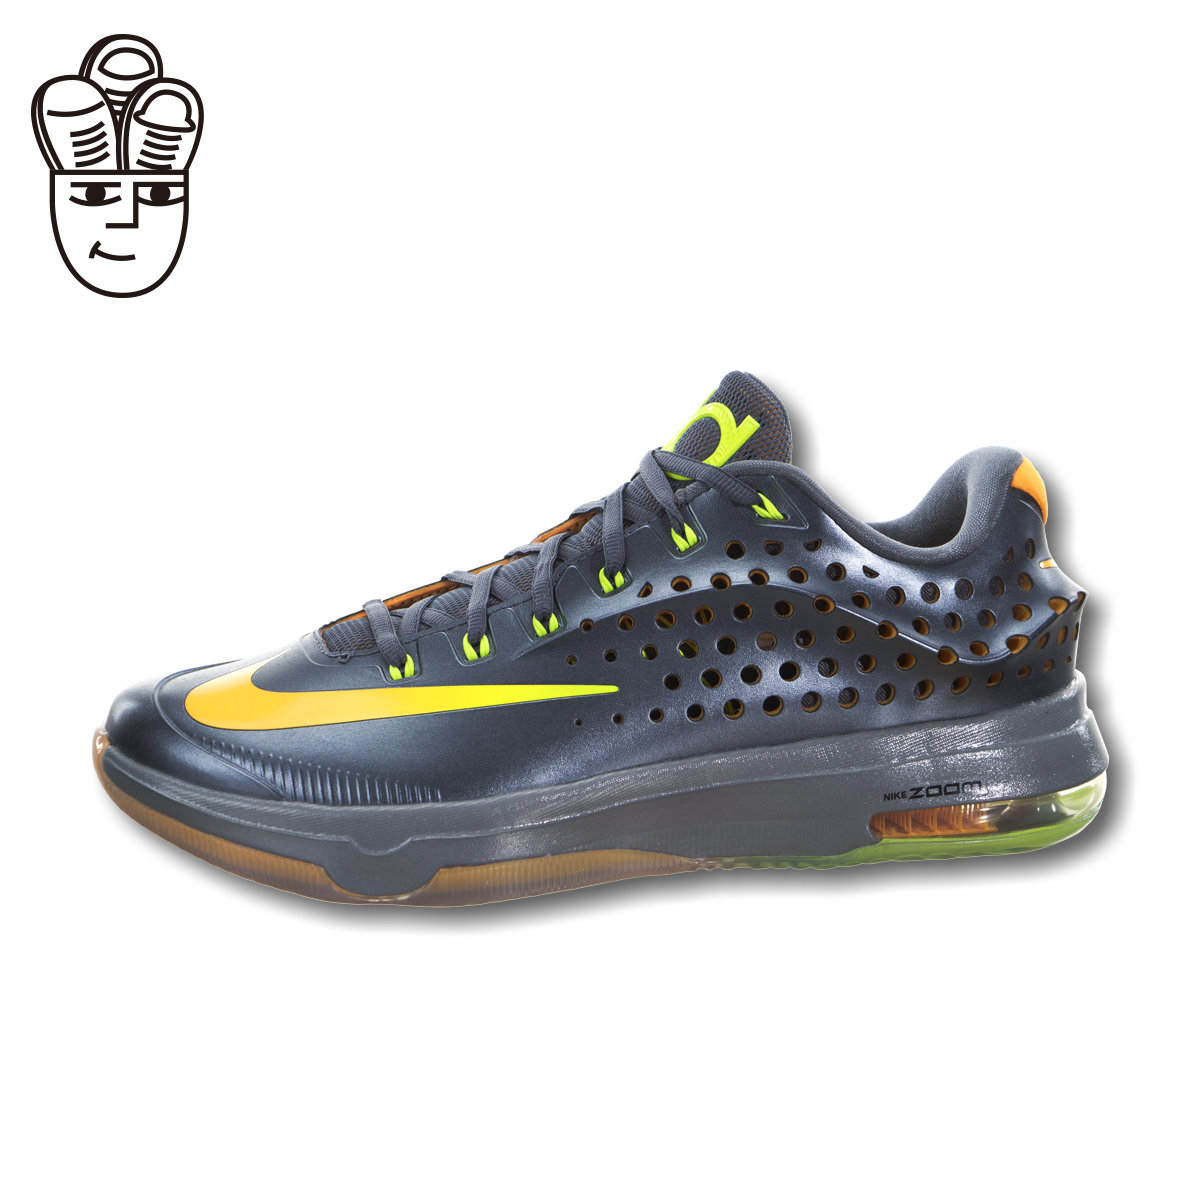 035b2635b012 Get Quotations · Nike nike kd 7 elite men s basketball shoes durant 7  generations elite sports and leisure shoes